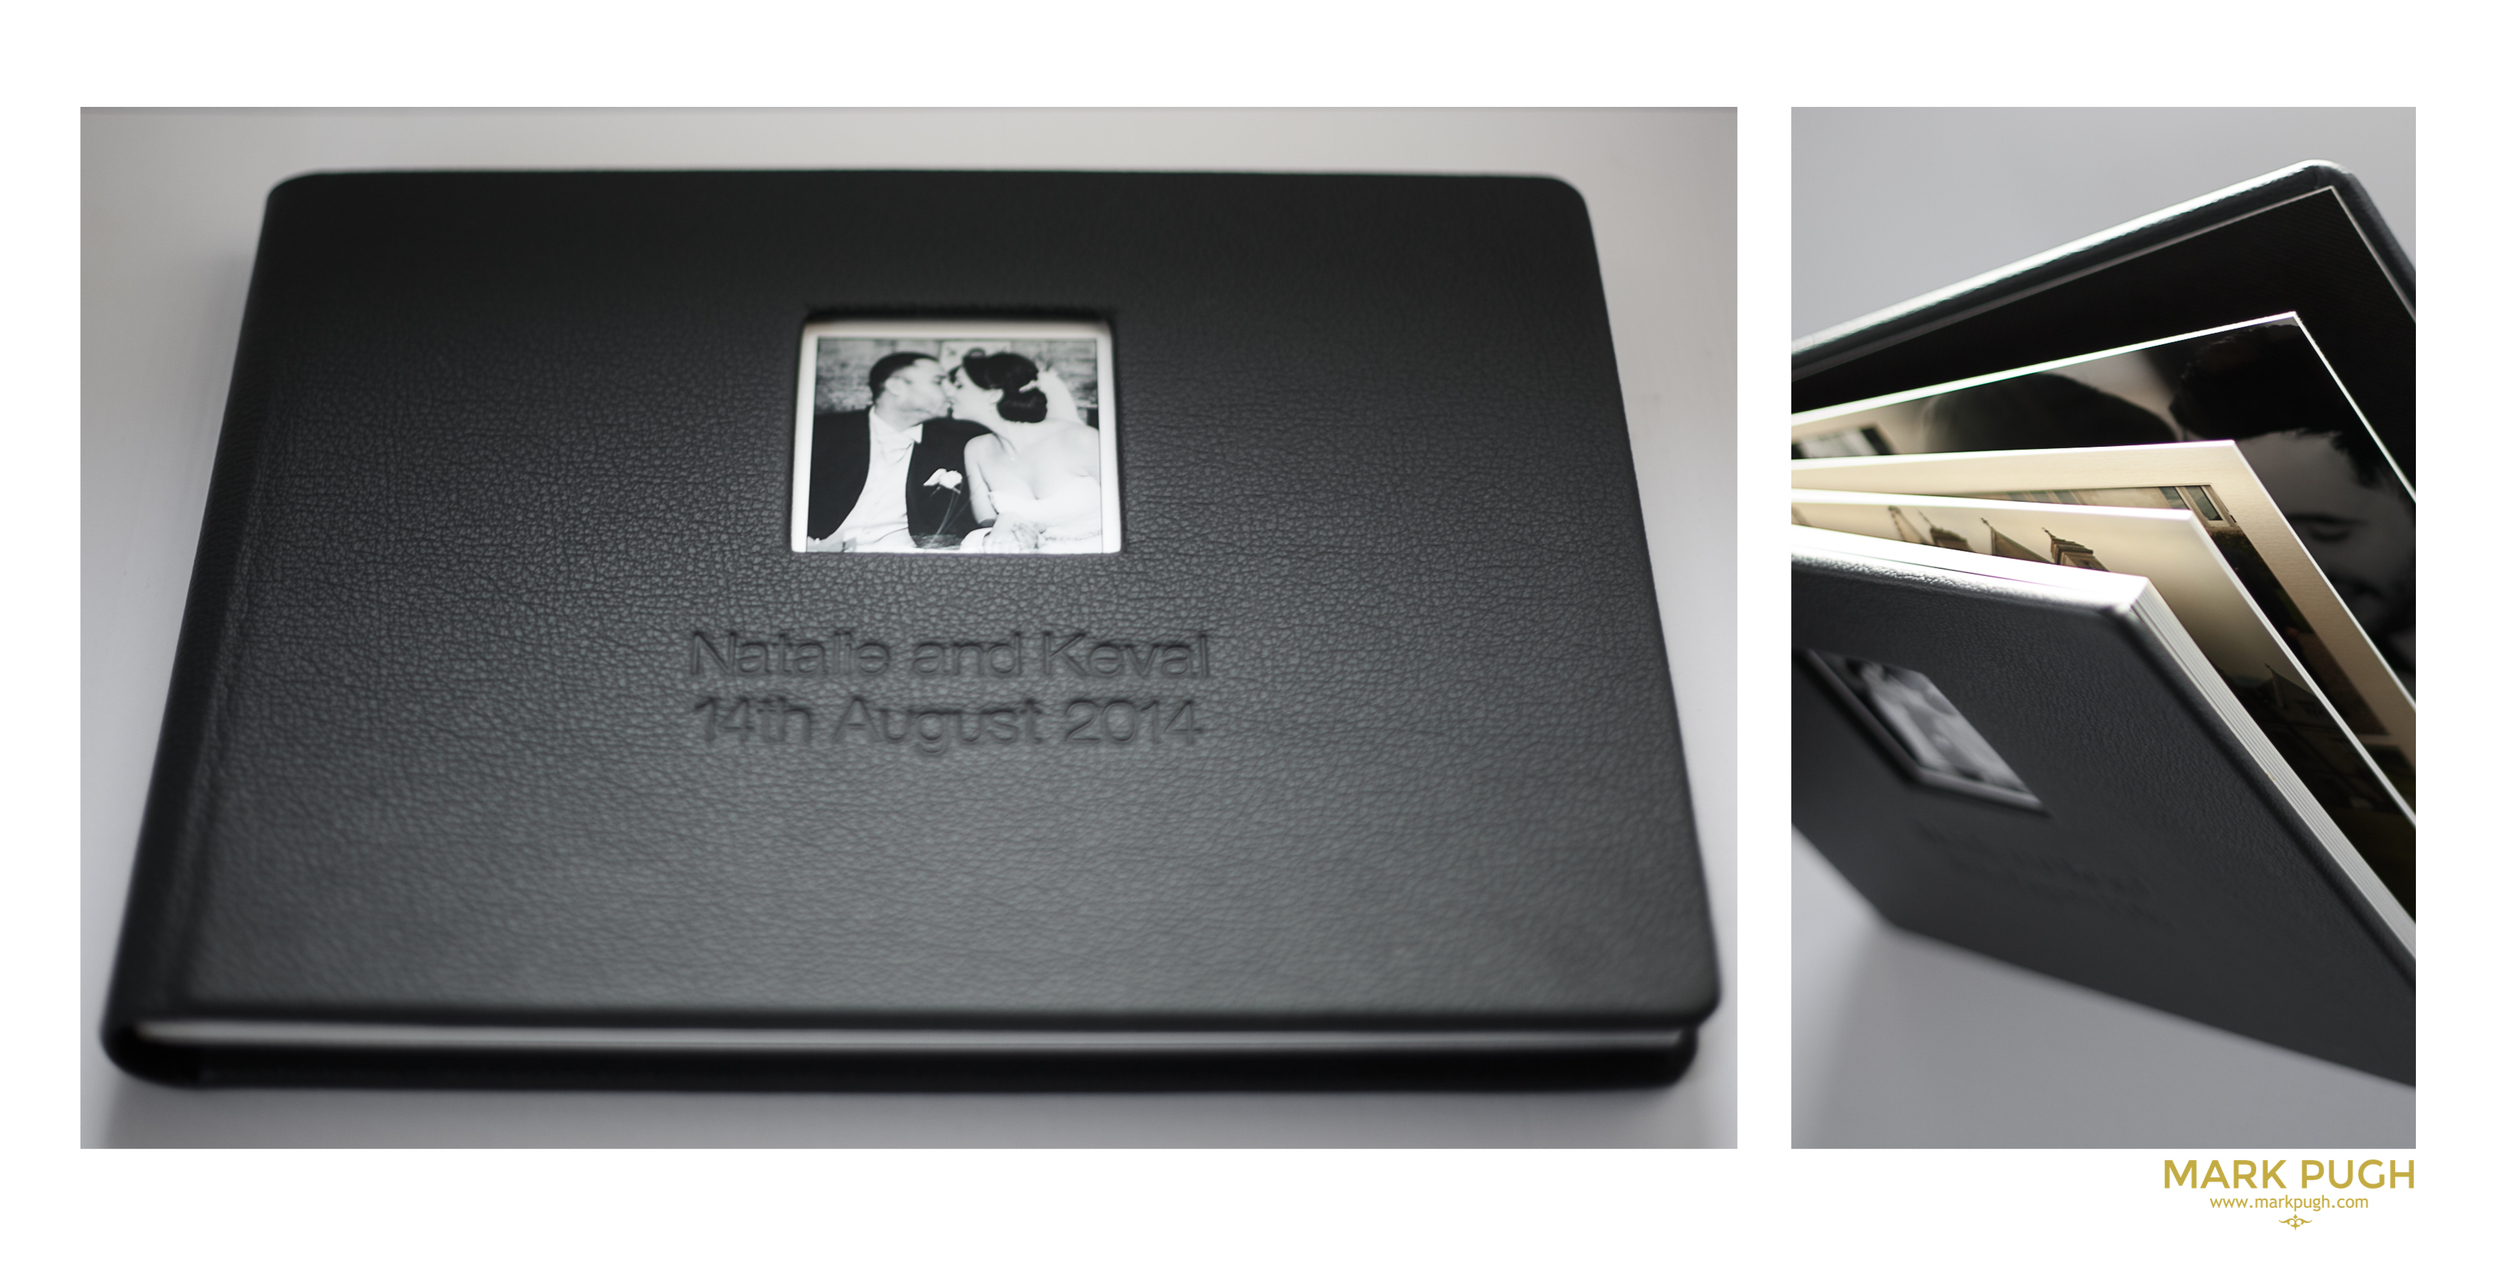 (above) photographs of the external album design - Natalie and Keval opted for a black album out of a choice of 14 different colours.